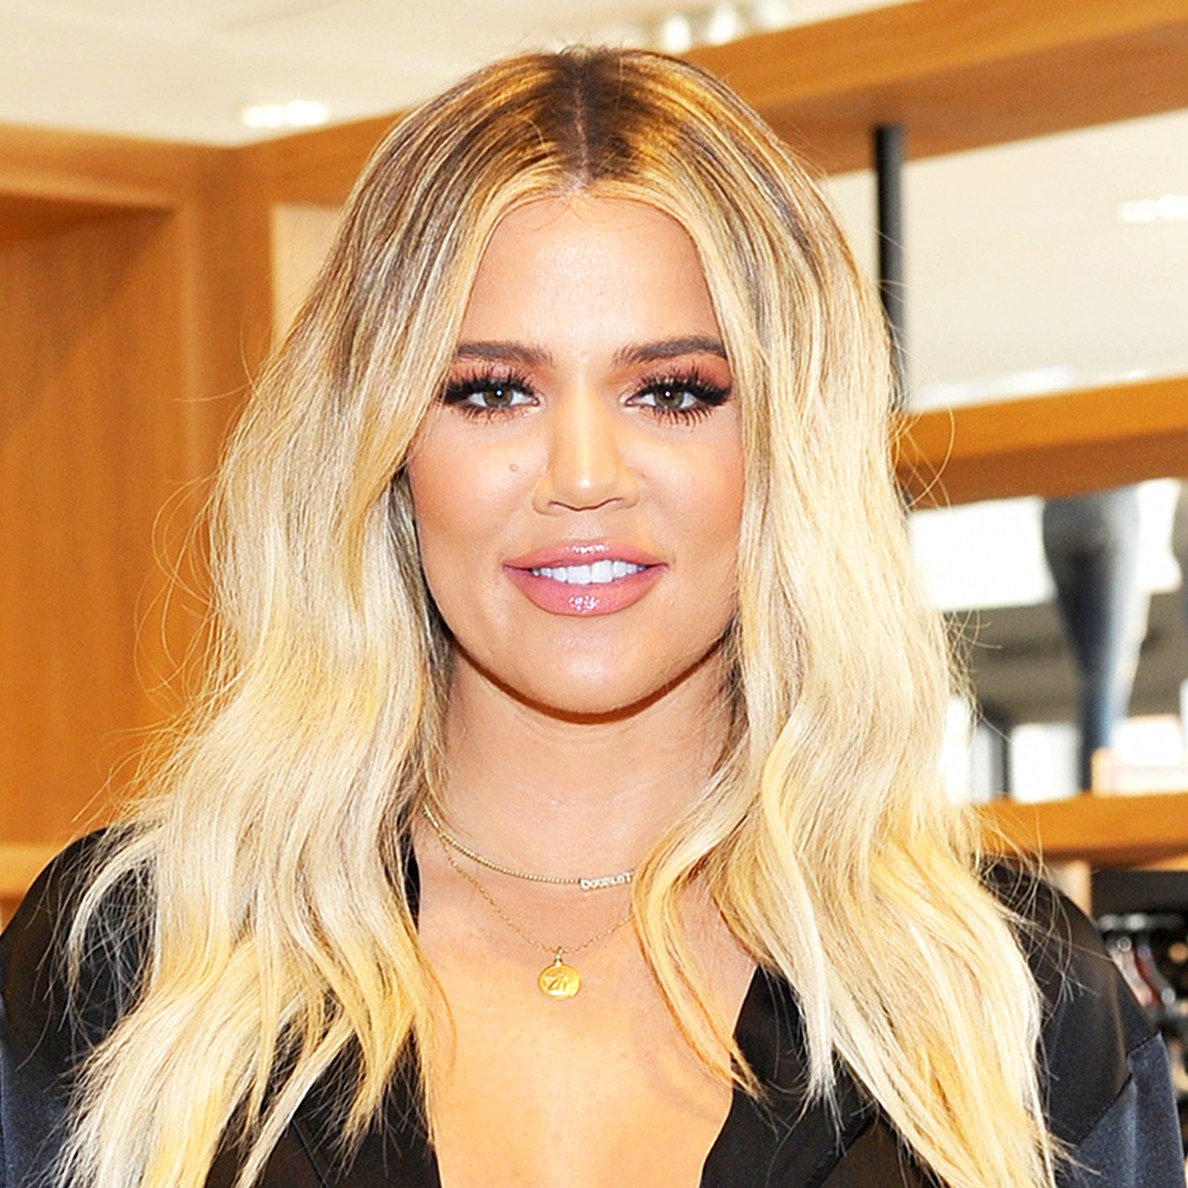 Khloe Kardashian attends Good American Anniversary Celebration With Khloe Kardashian & Emma Grede at Nordstrom Century City on October 7, 2017 in Los Angeles, California.